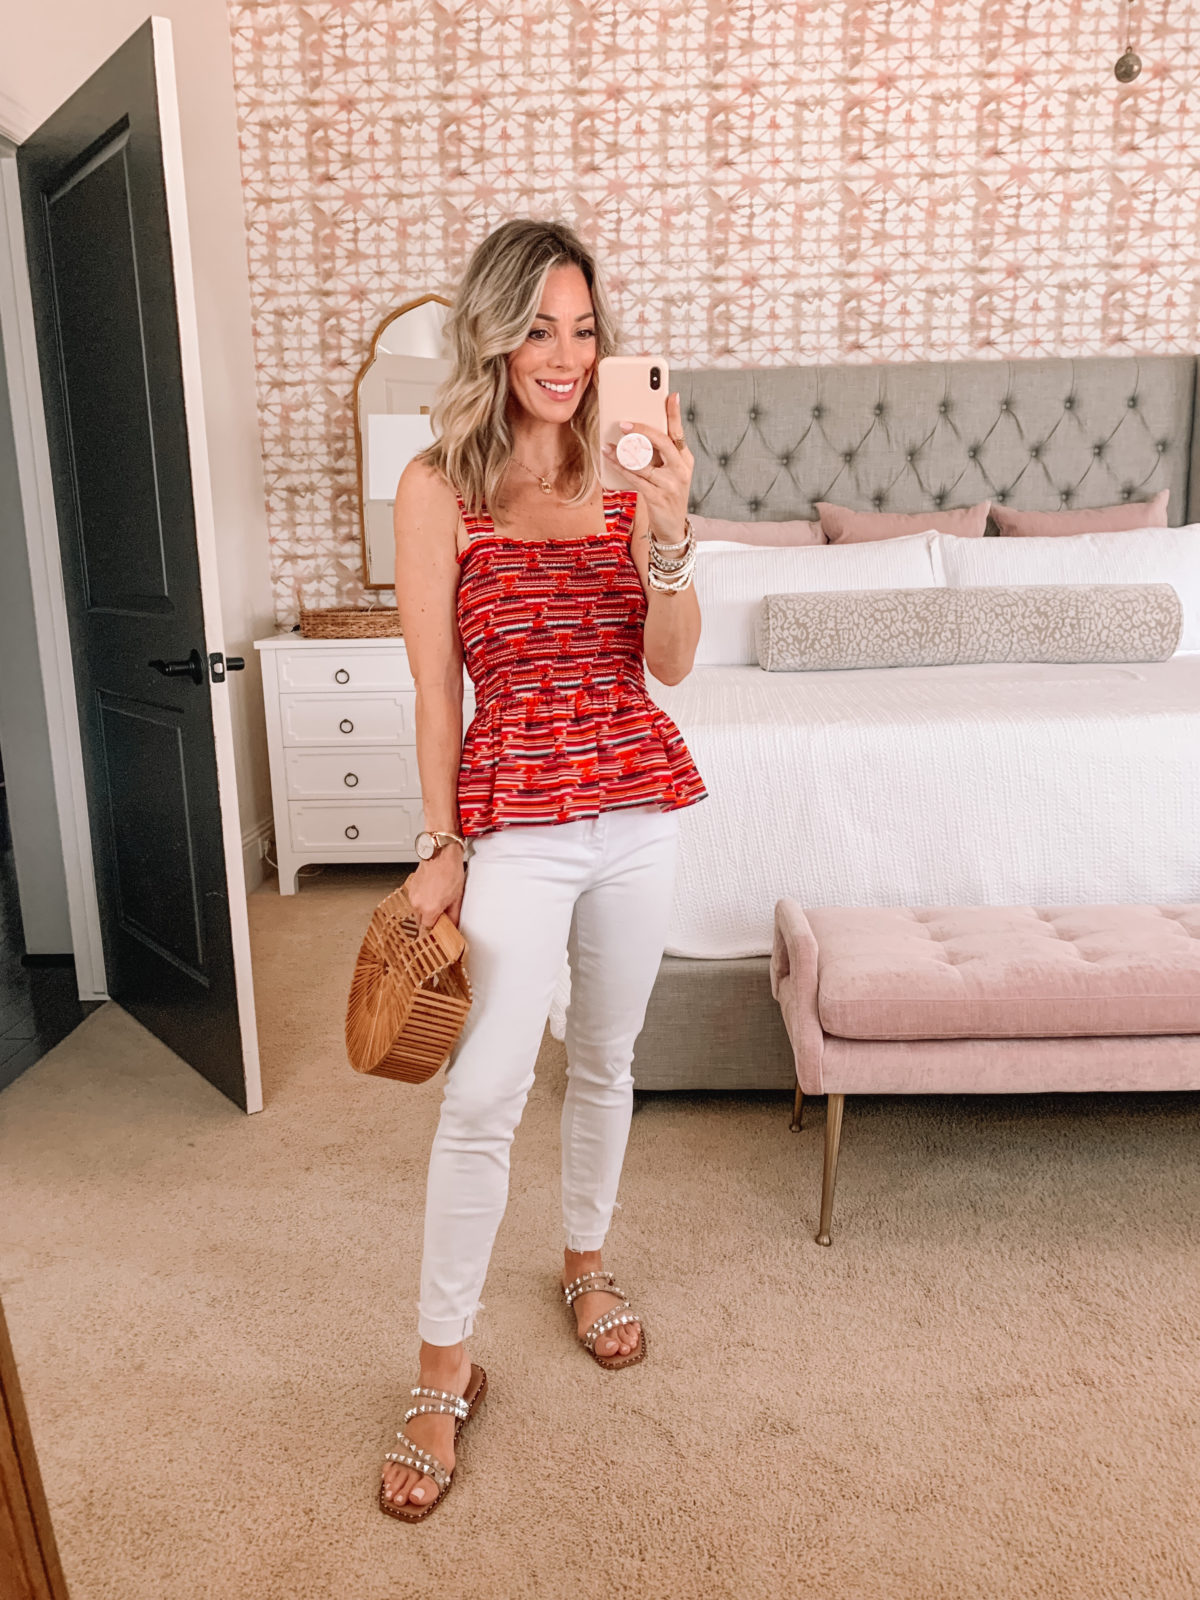 Dressing Room Finds, Peplum Top and White Jeans with Studded Sandals